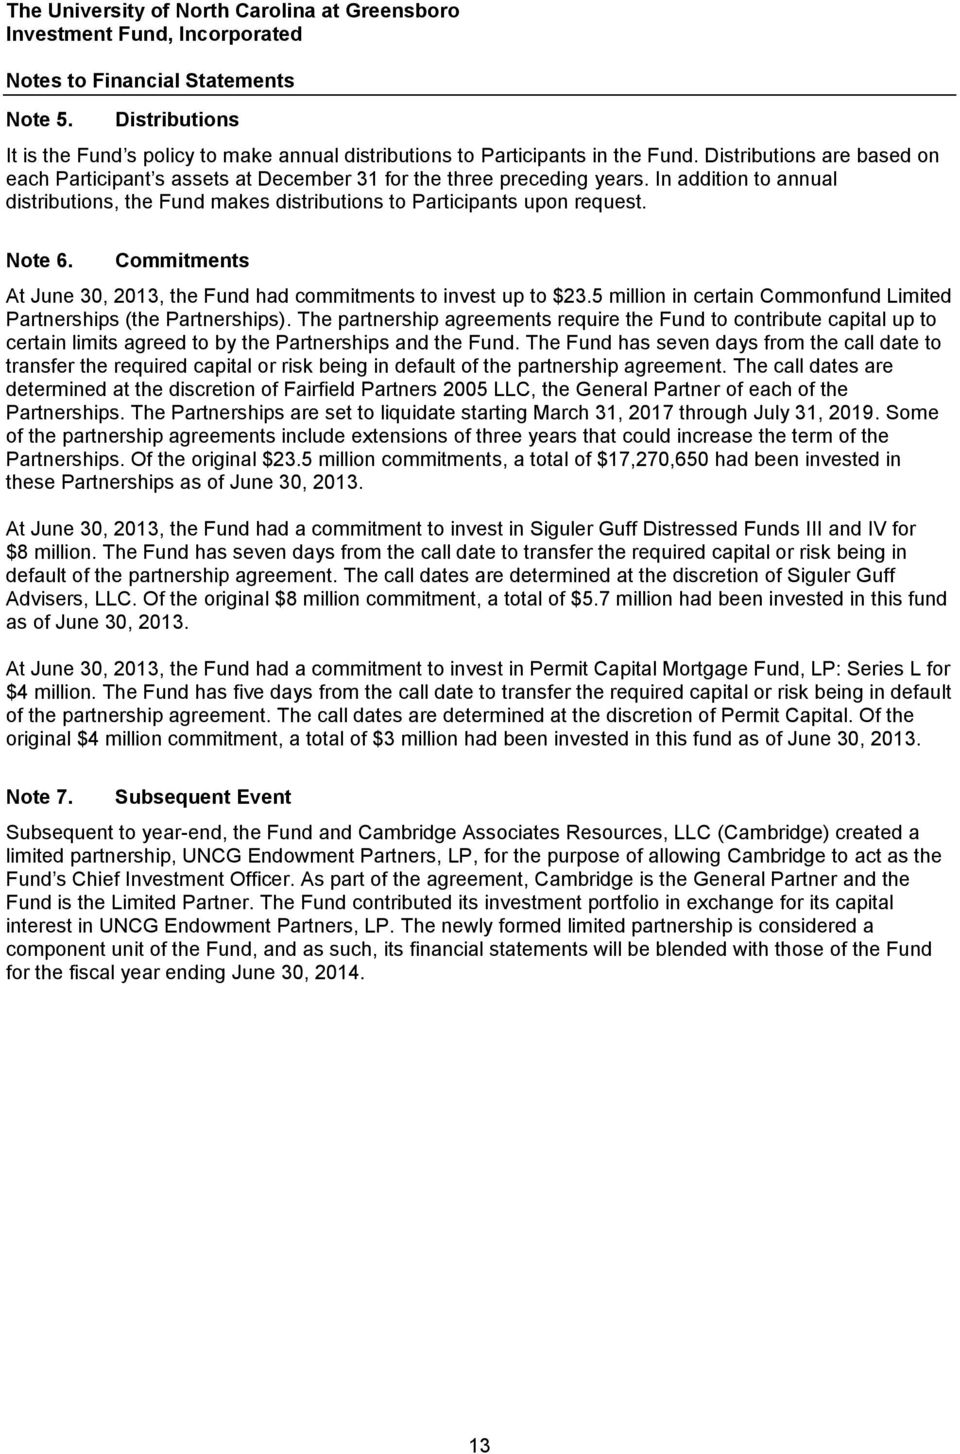 Note 6. Commitments At June 30, 2013, the Fund had commitments to invest up to $23.5 million in certain Commonfund Limited Partnerships (the Partnerships).